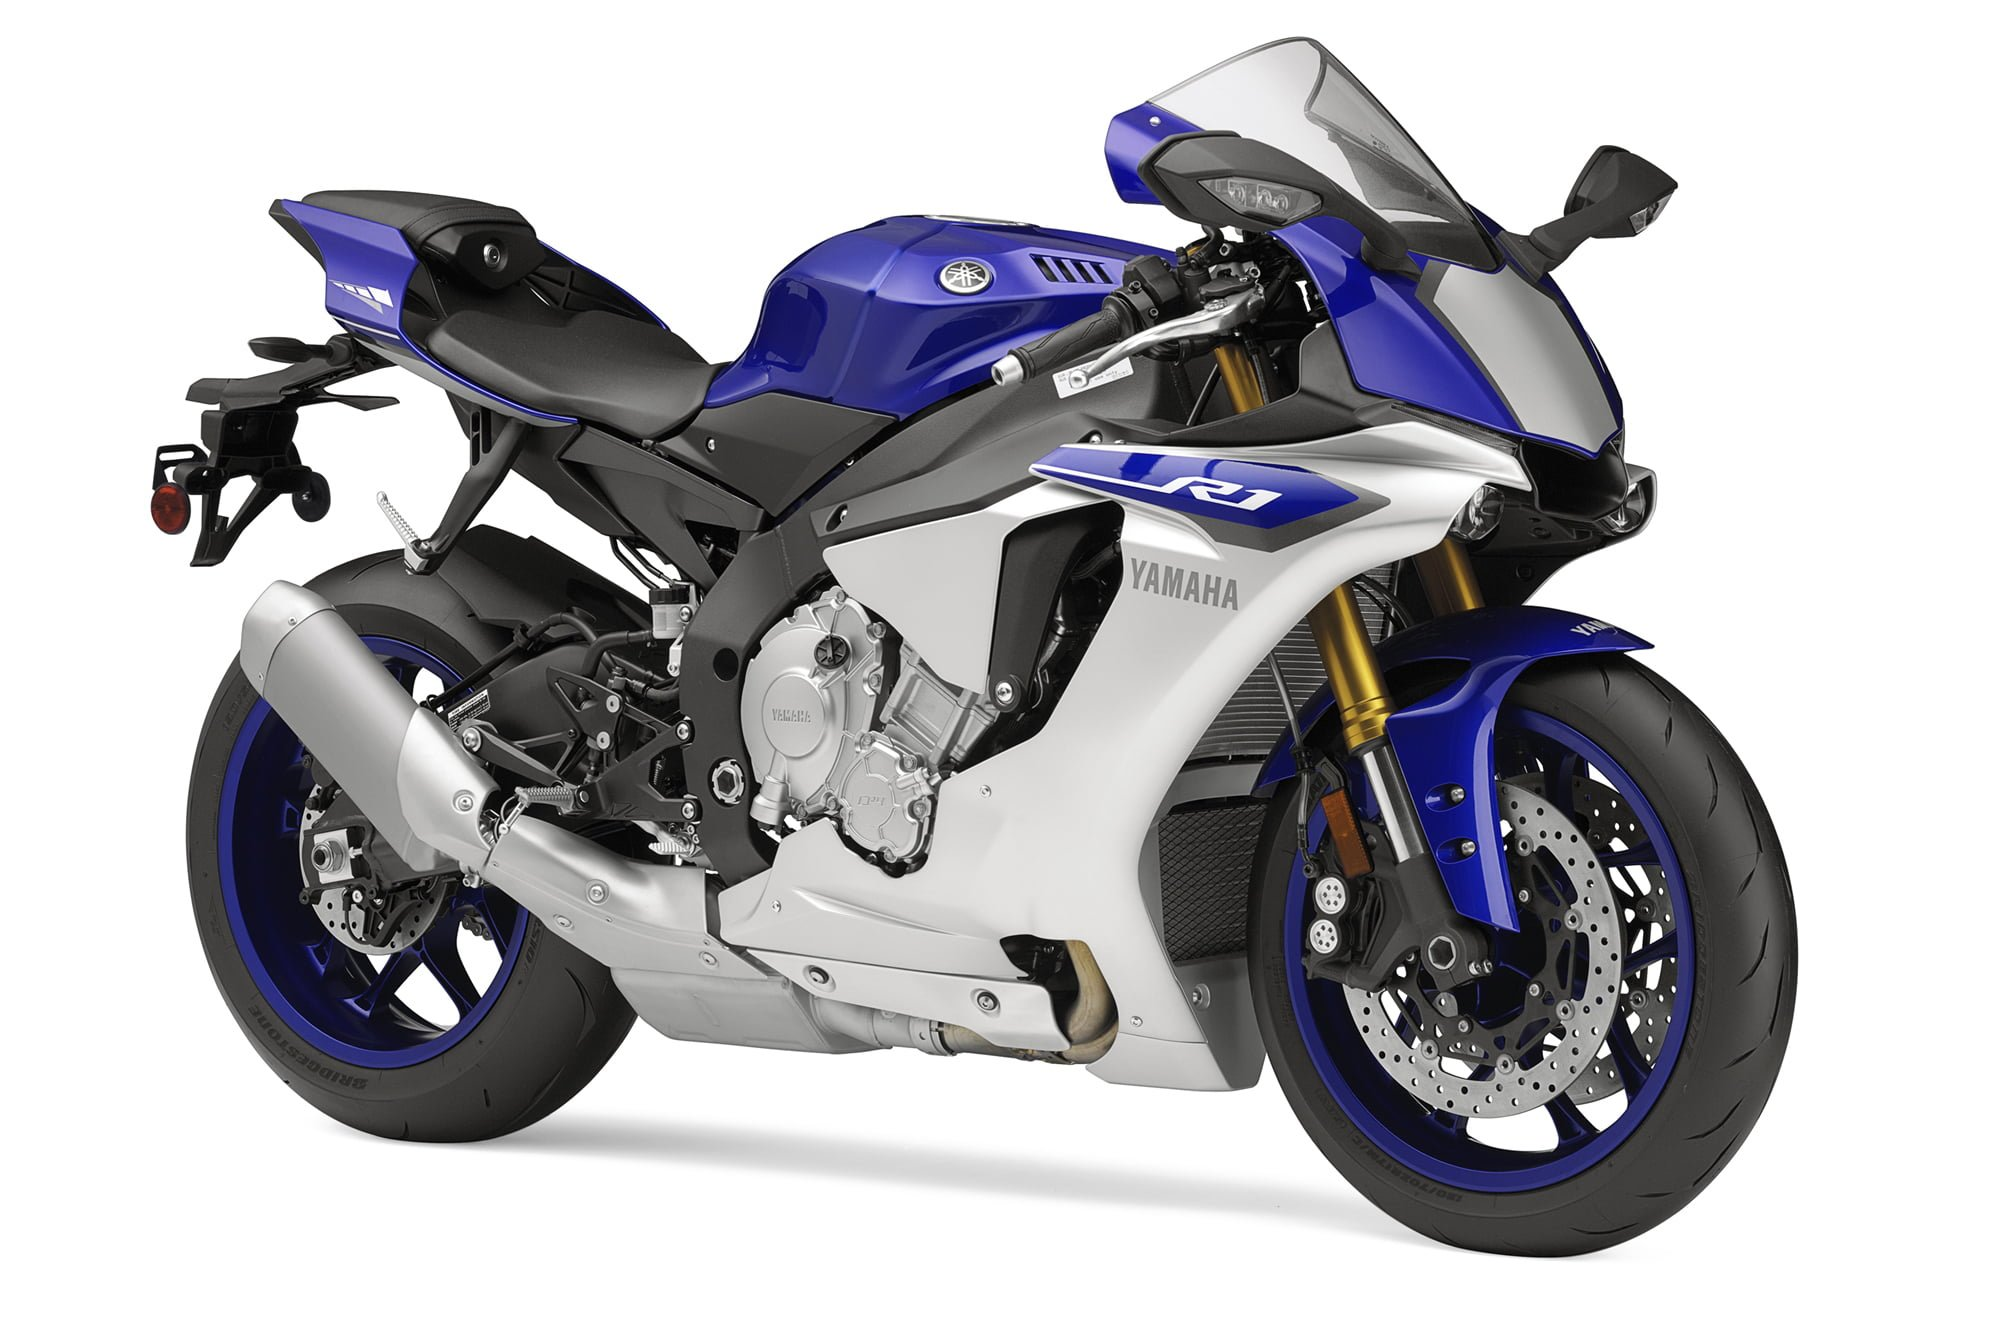 2015 yamaha r1 unveiled at eicma first look specs price. Black Bedroom Furniture Sets. Home Design Ideas